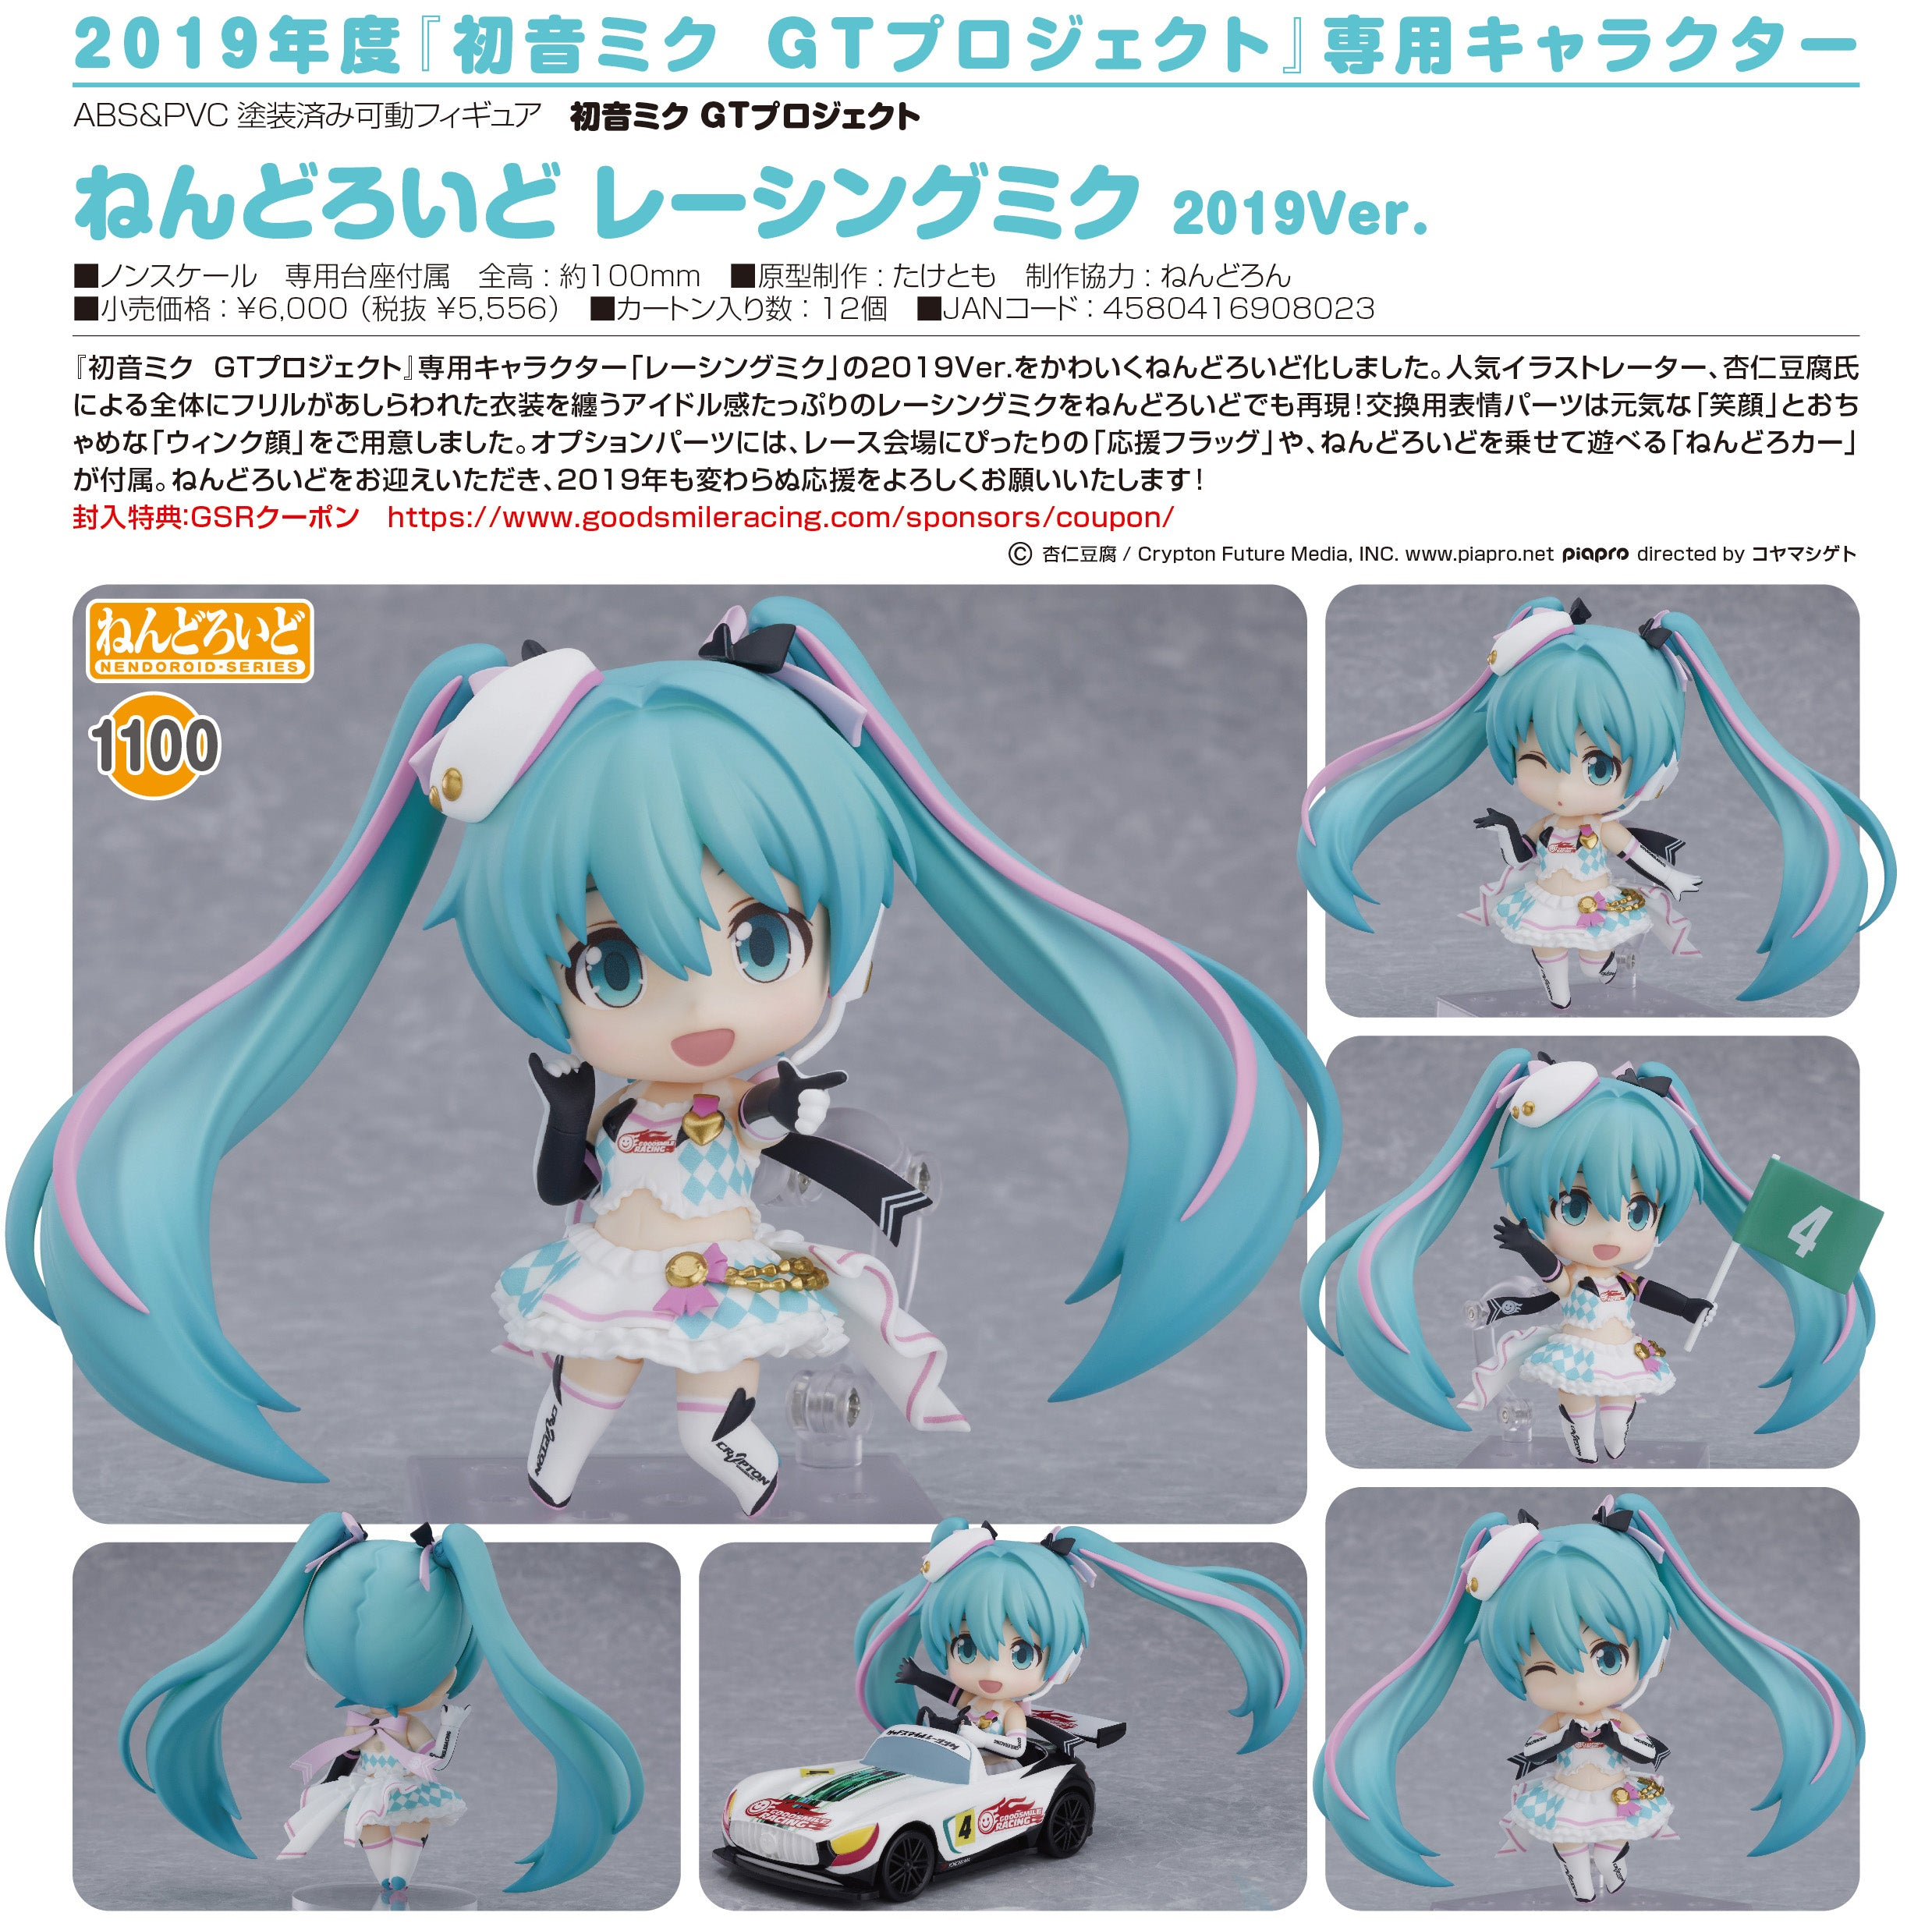 GOOD SMILE Racing - Hatsune Miku - Nendoroid #1100 - Racing 2019 Ver. (Good Smile Company, GOOD SMILE Racing)